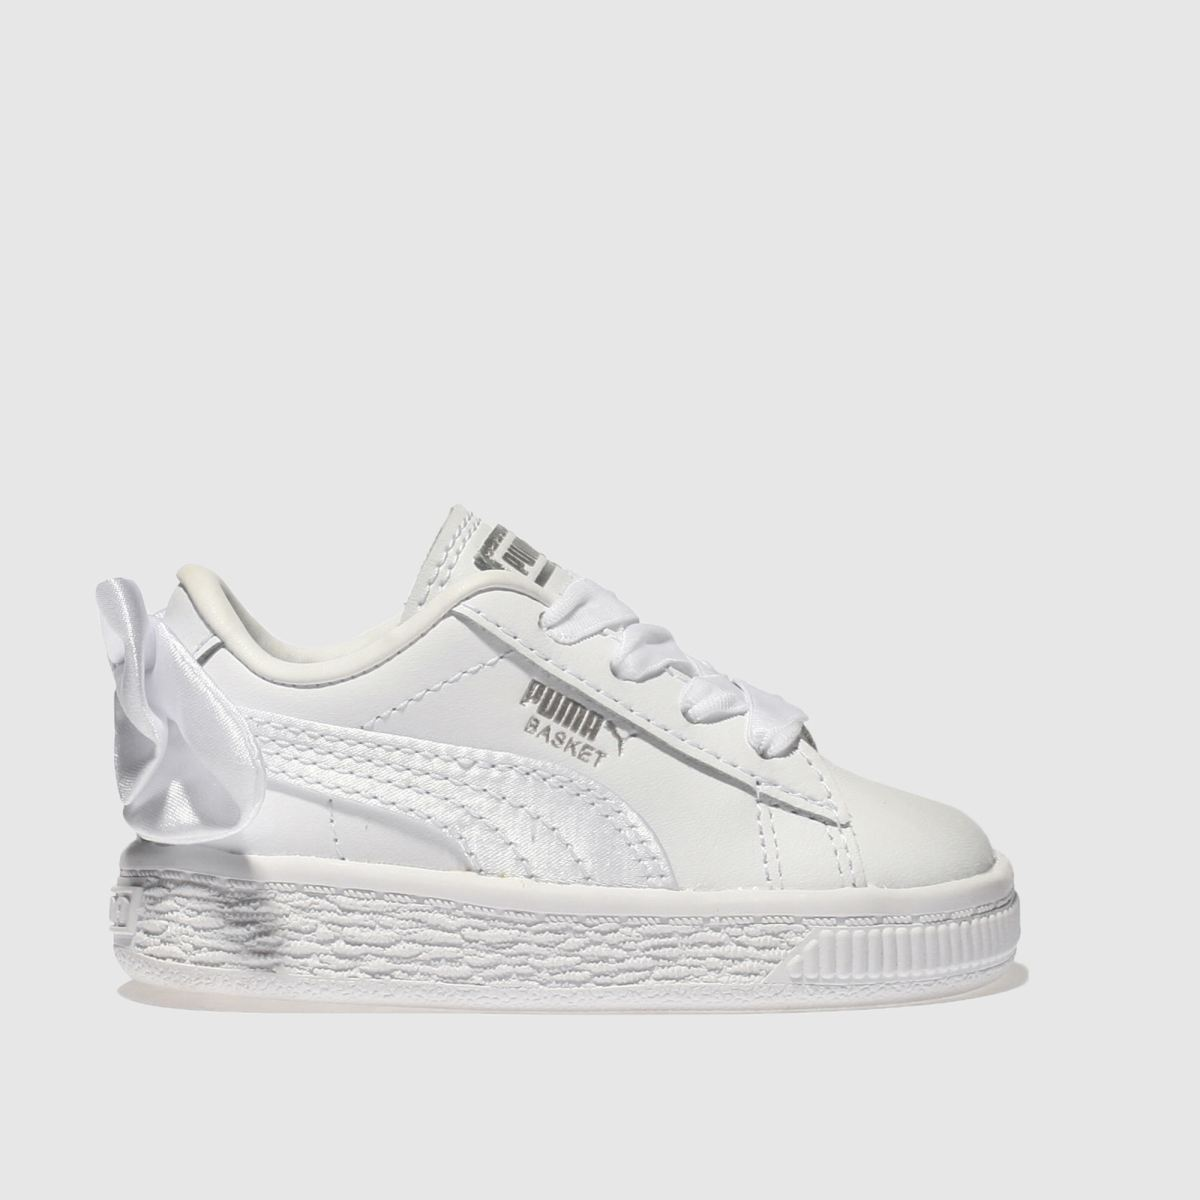 Puma White Basket Bow Girls Toddler Toddler